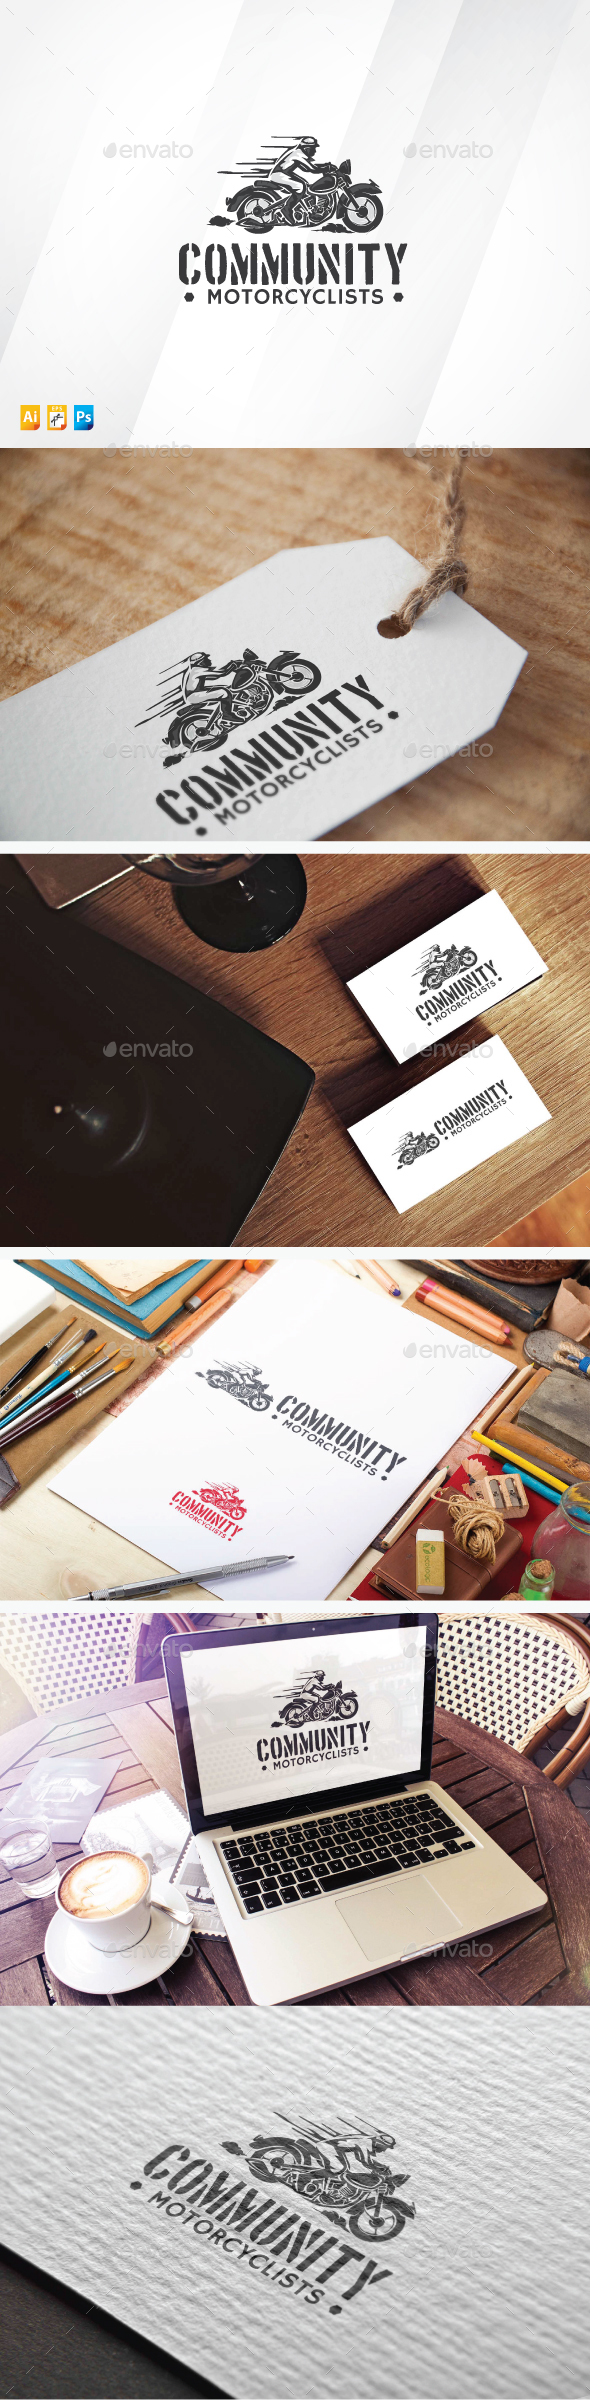 Community Motorcyclists - Humans Logo Templates